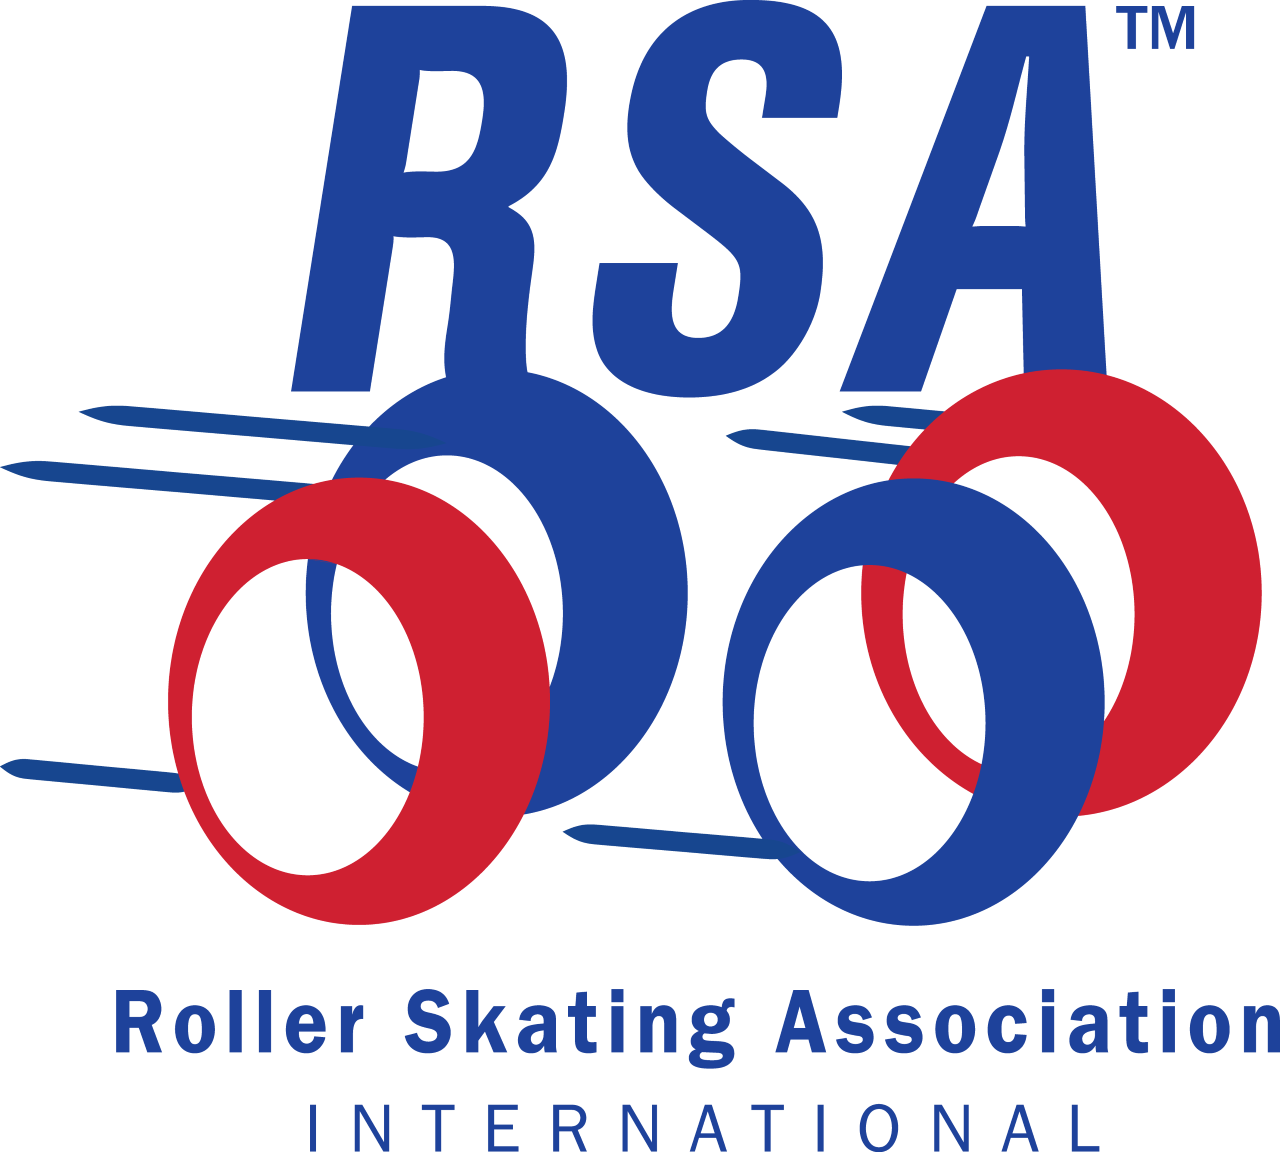 The Roller Skating Association